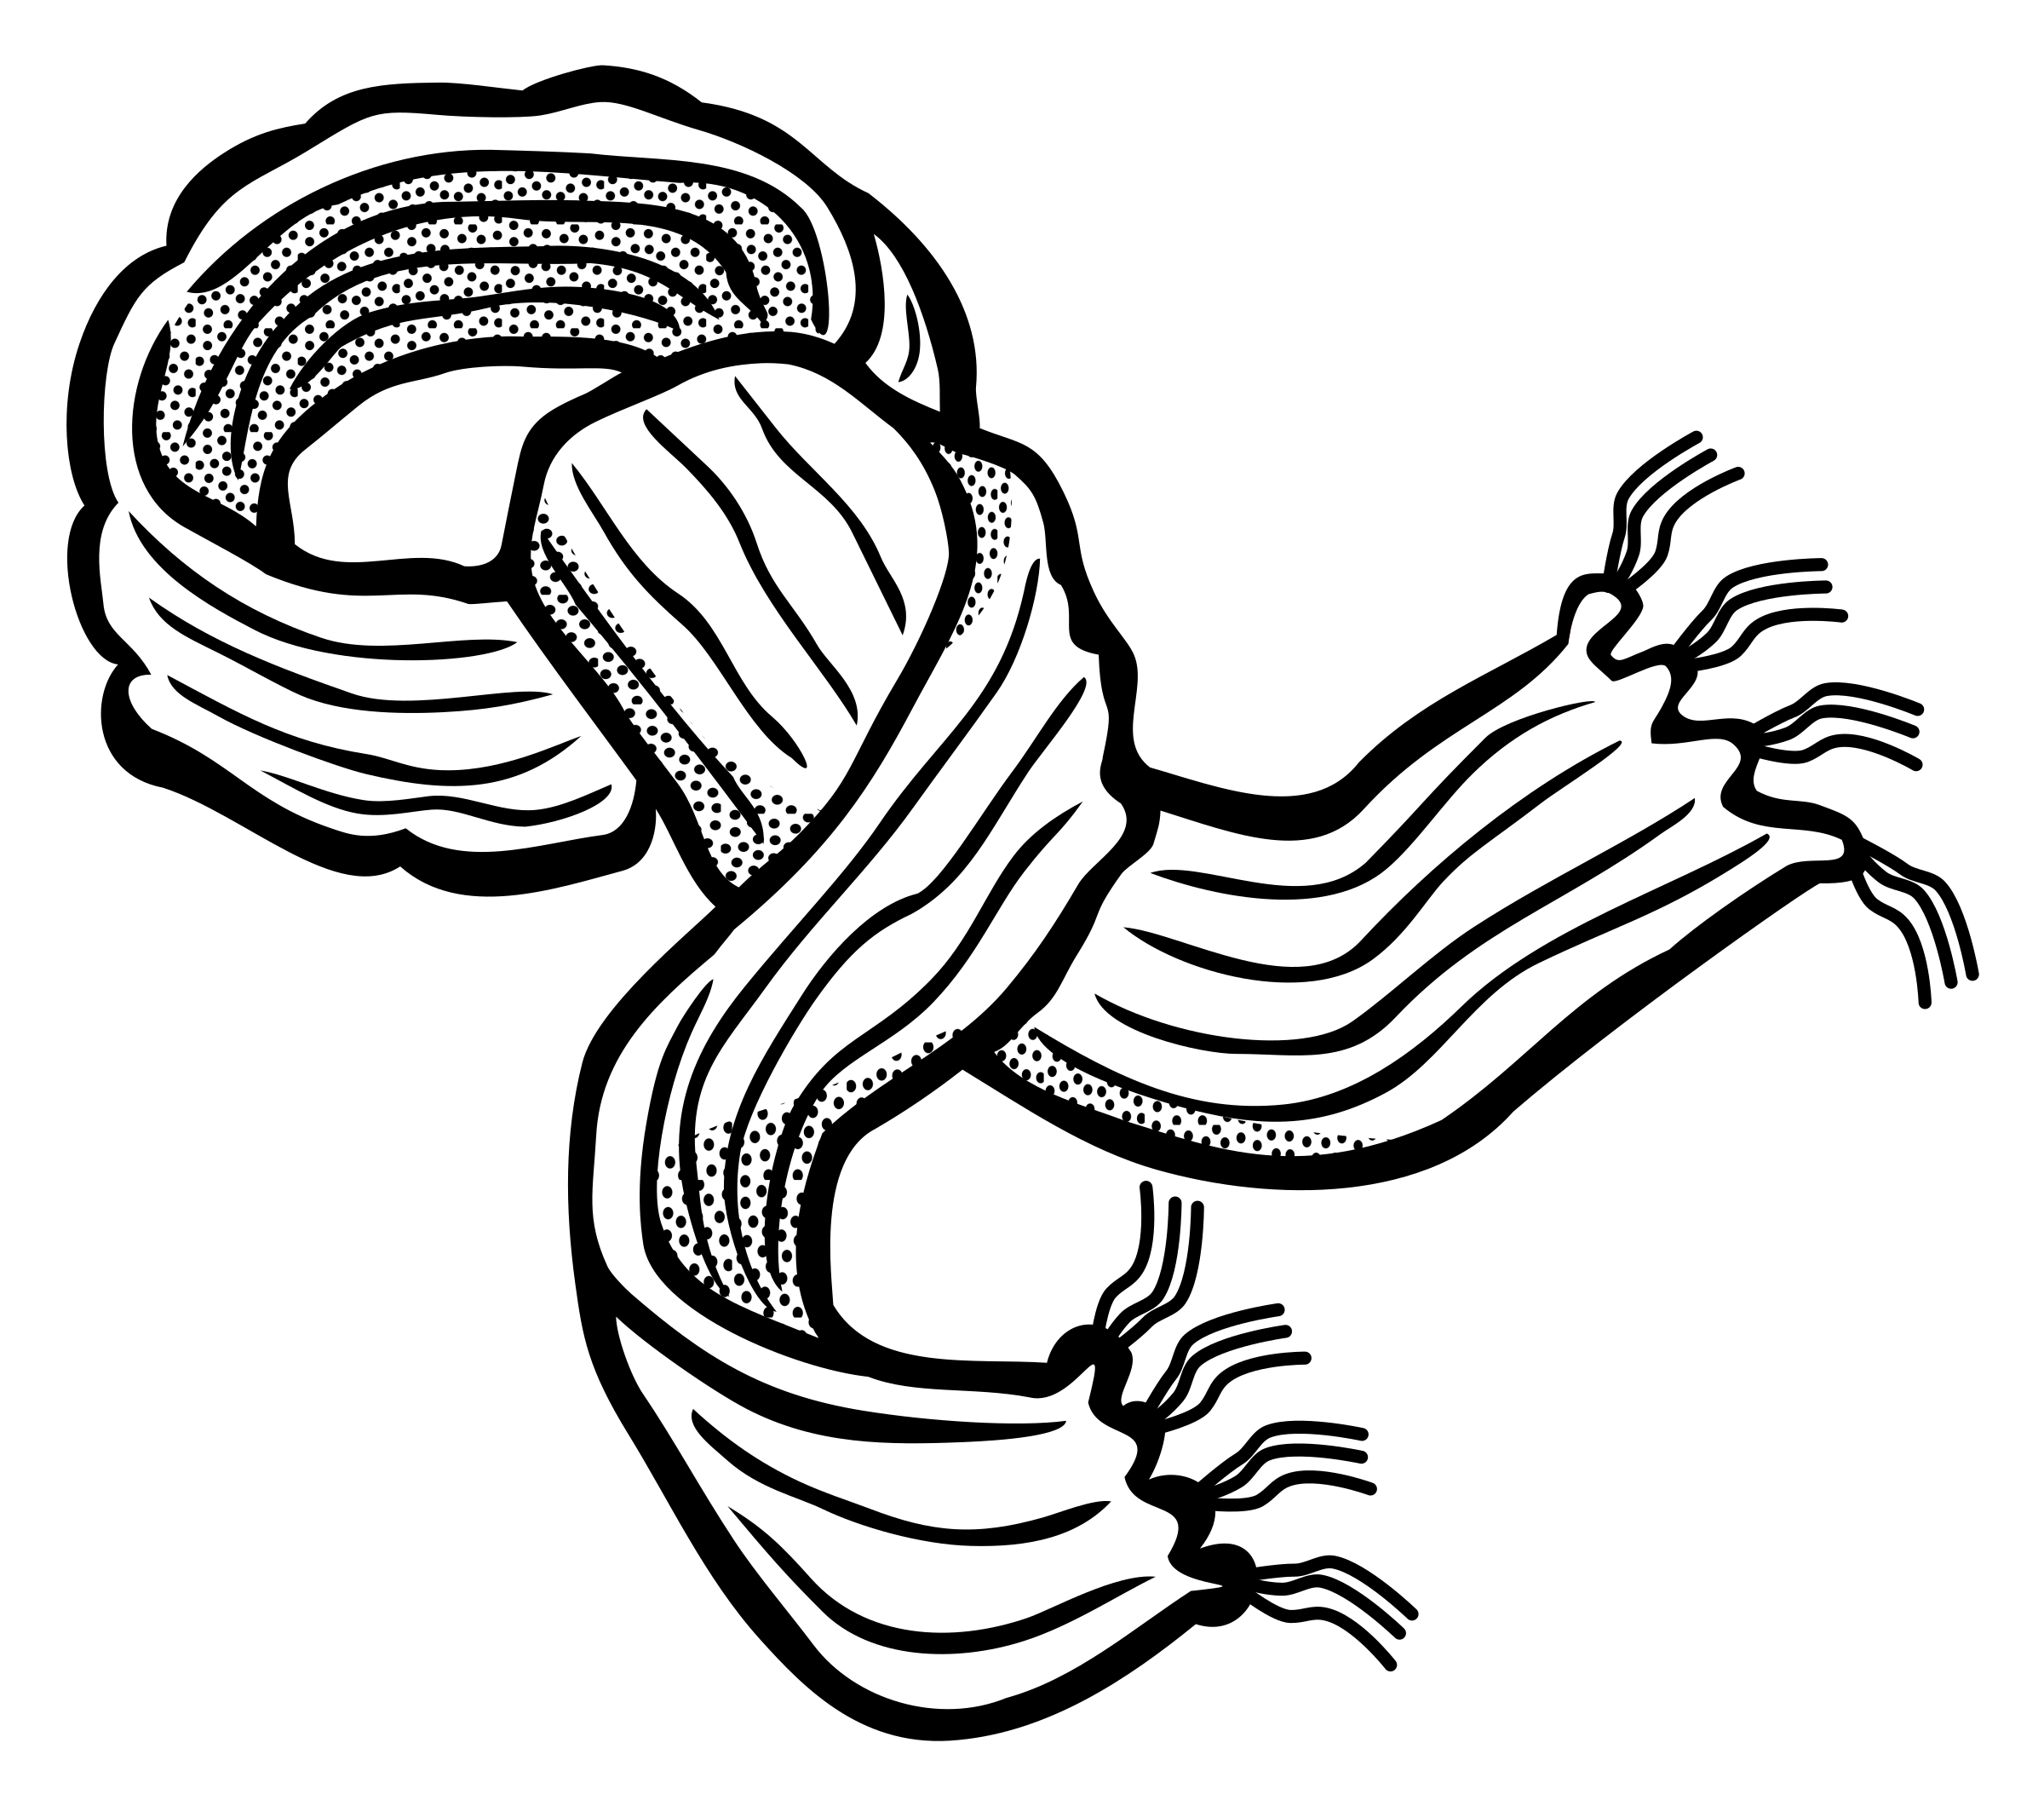 Scarf pencil in color. Gloves clipart black and white